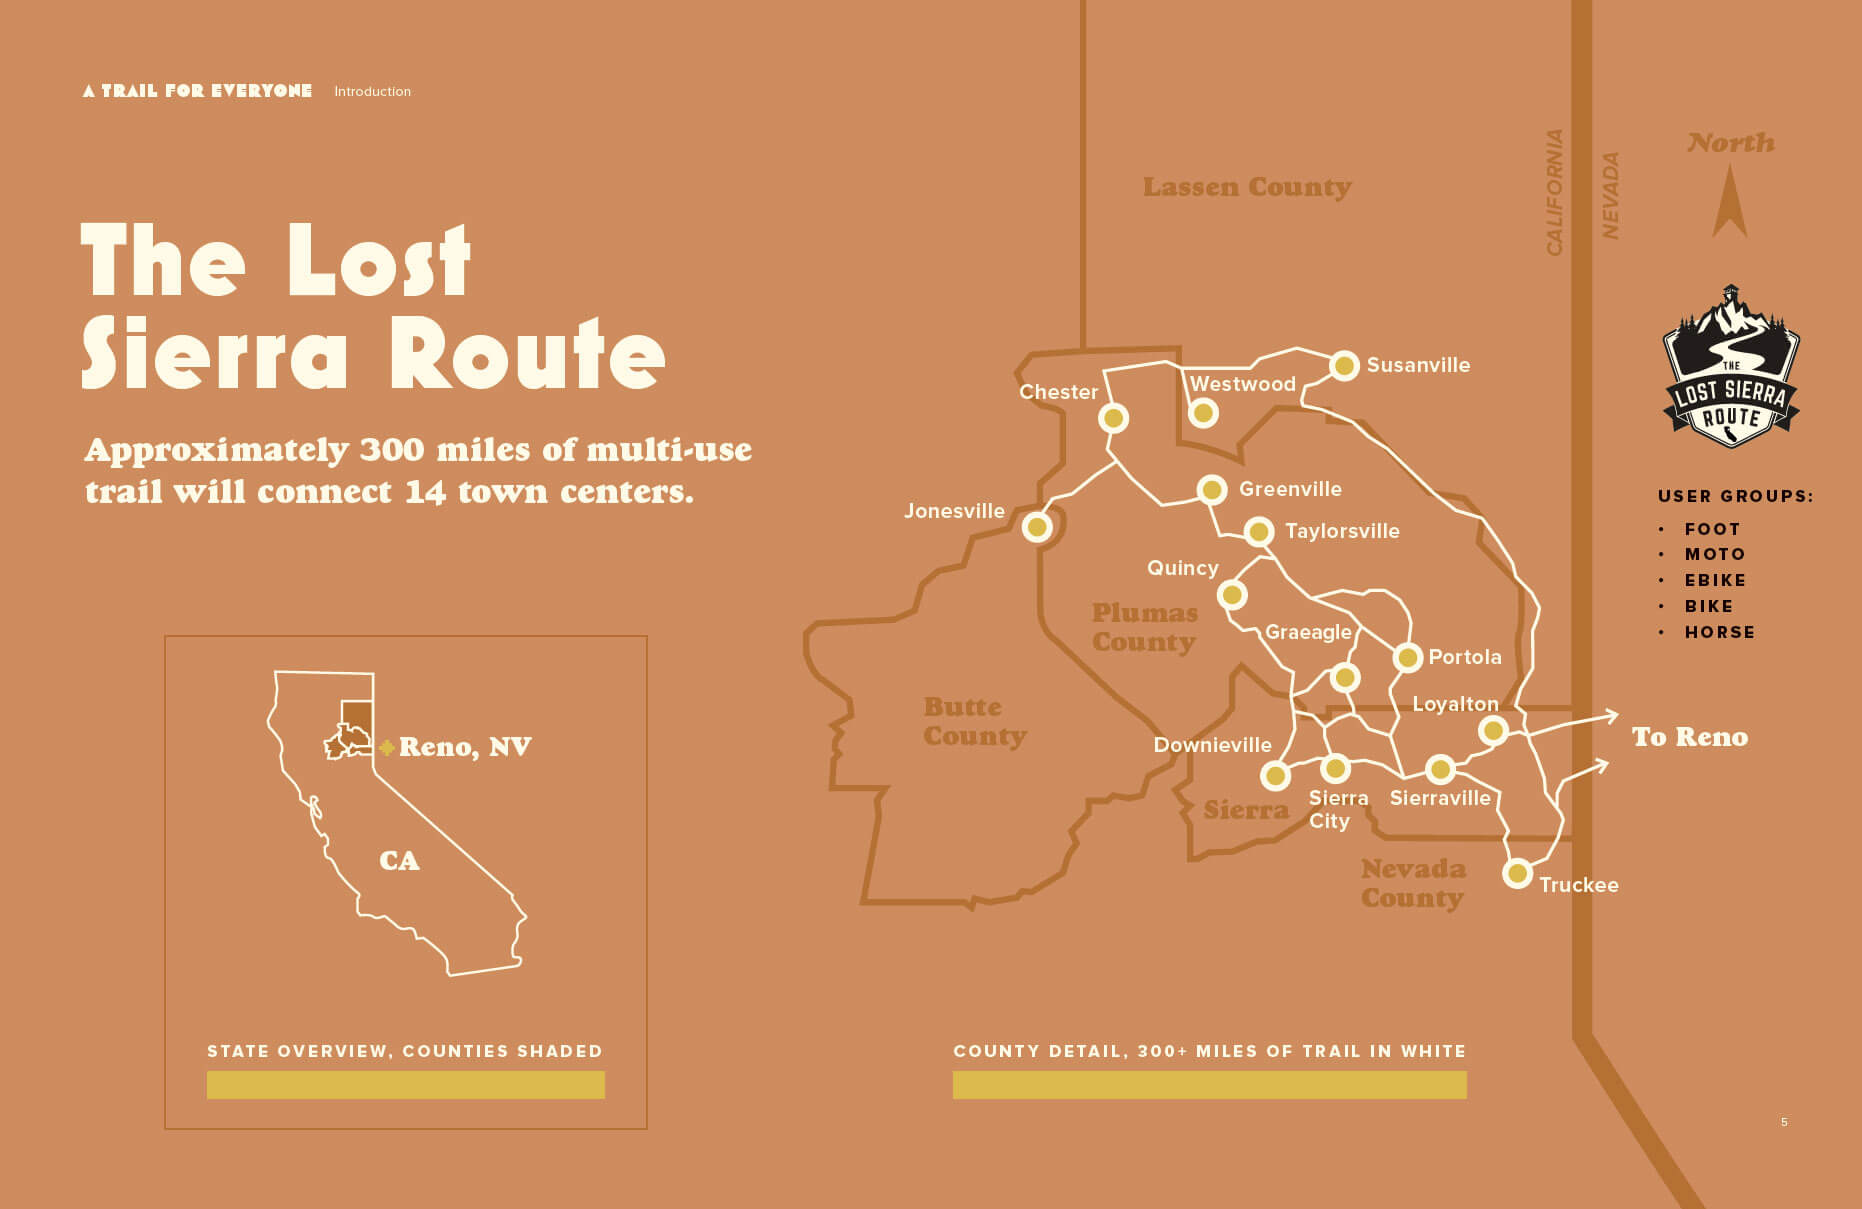 The Lost Sierra Route Approximately 300 miles of multi-use trail will connect 14 town centers.